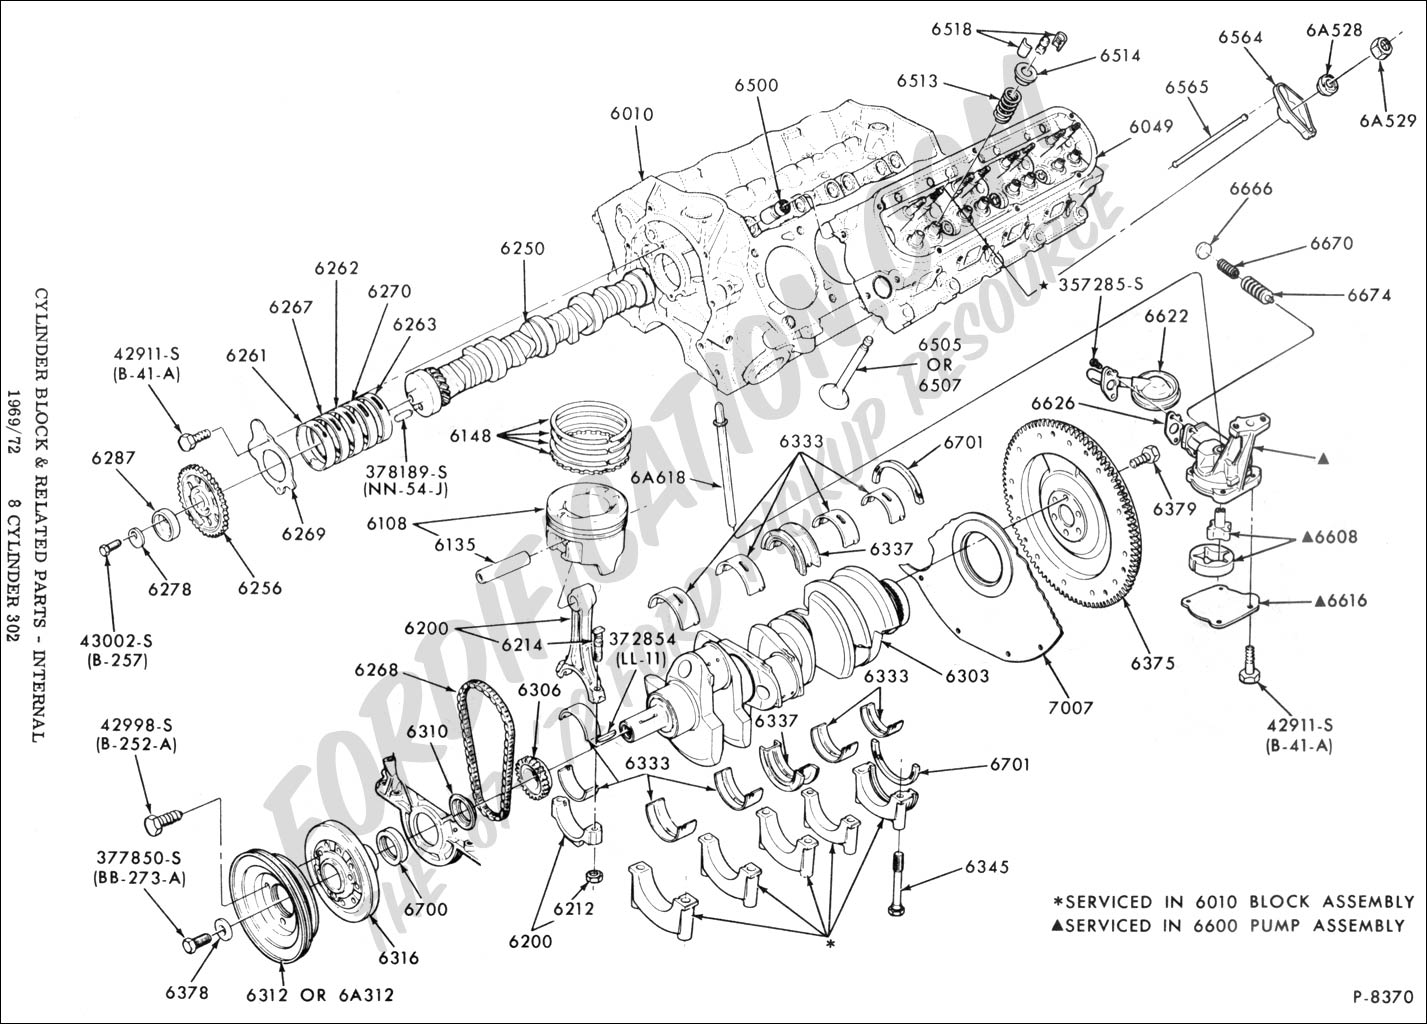 302 ford engine diagram get wiring diagram 96 ford bronco engine diagram getting